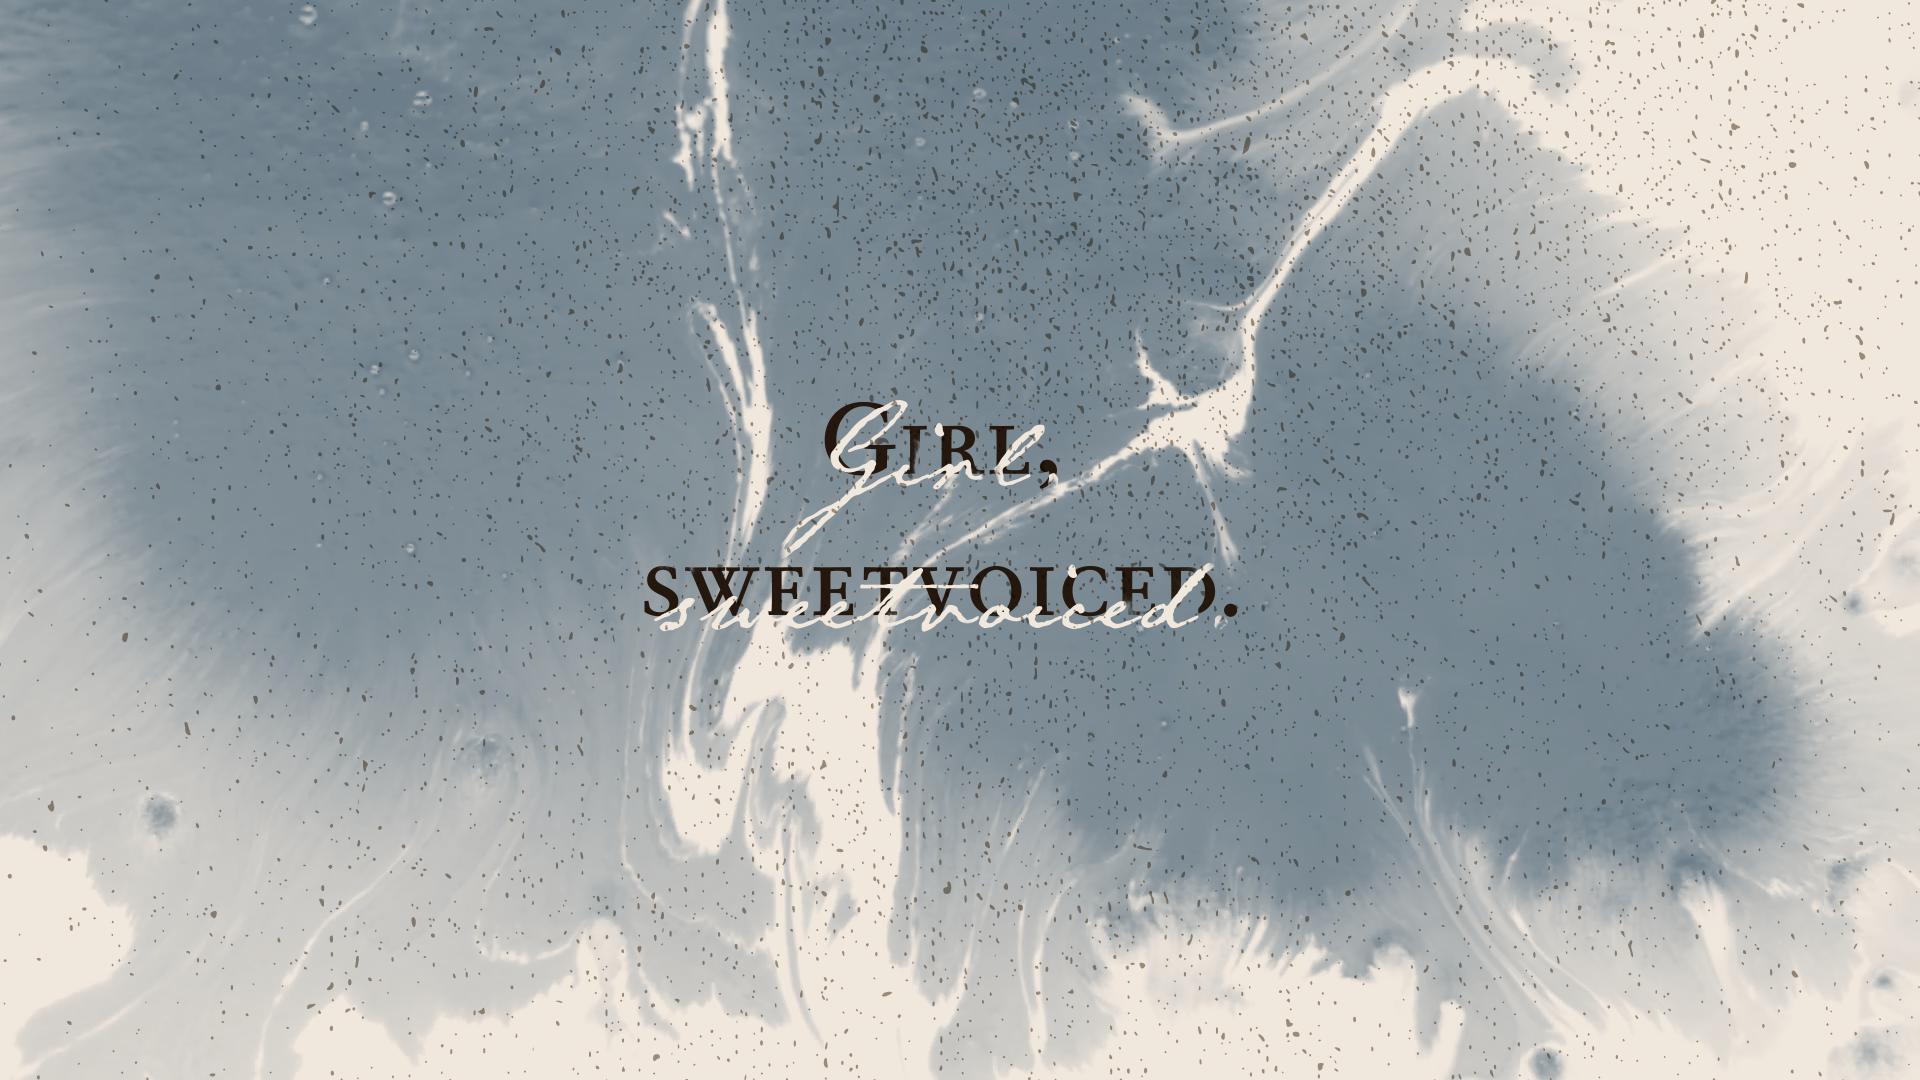 GIRL, SWEETVOICED (0-00-15-13).png